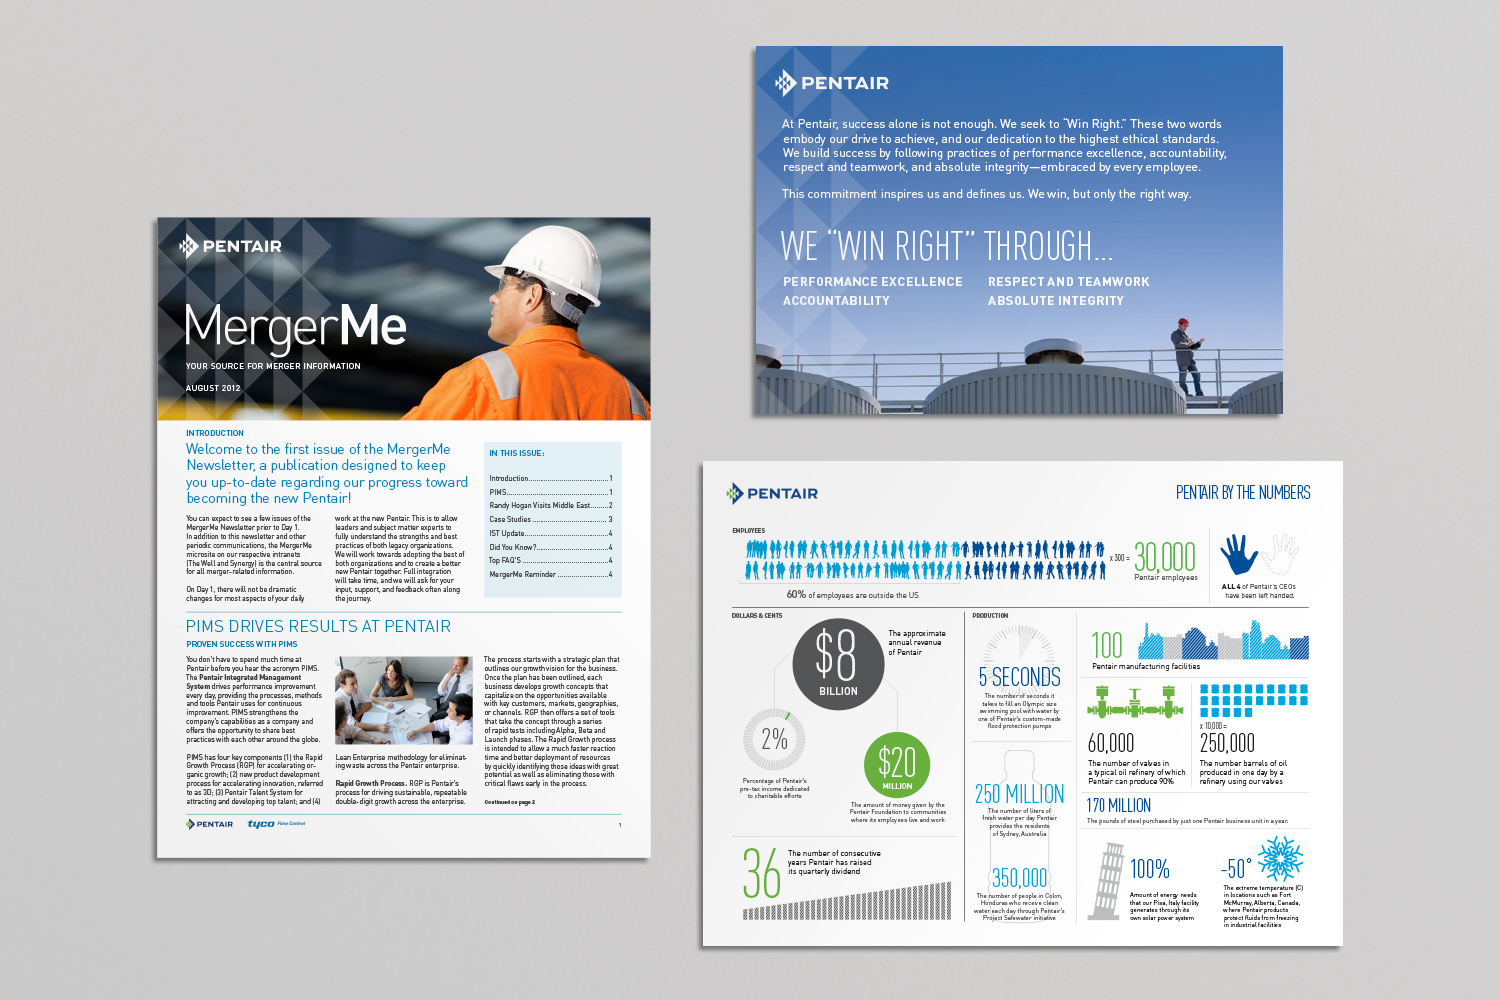 Pentair MergerMe employee newsletter, Win Right vision and values card, and Pentair by the Numbers infographic